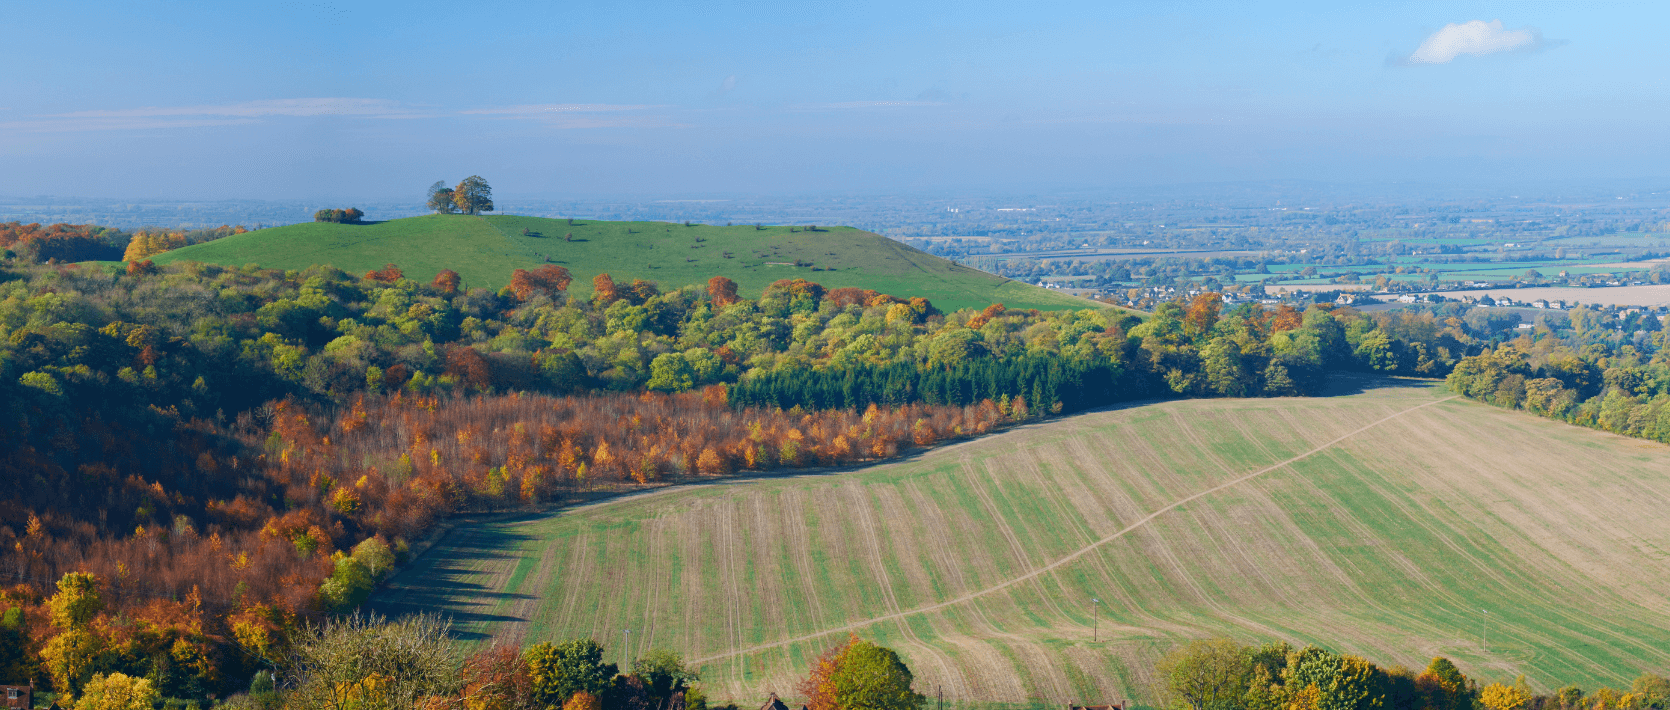 A middle class revolt in the Chilterns